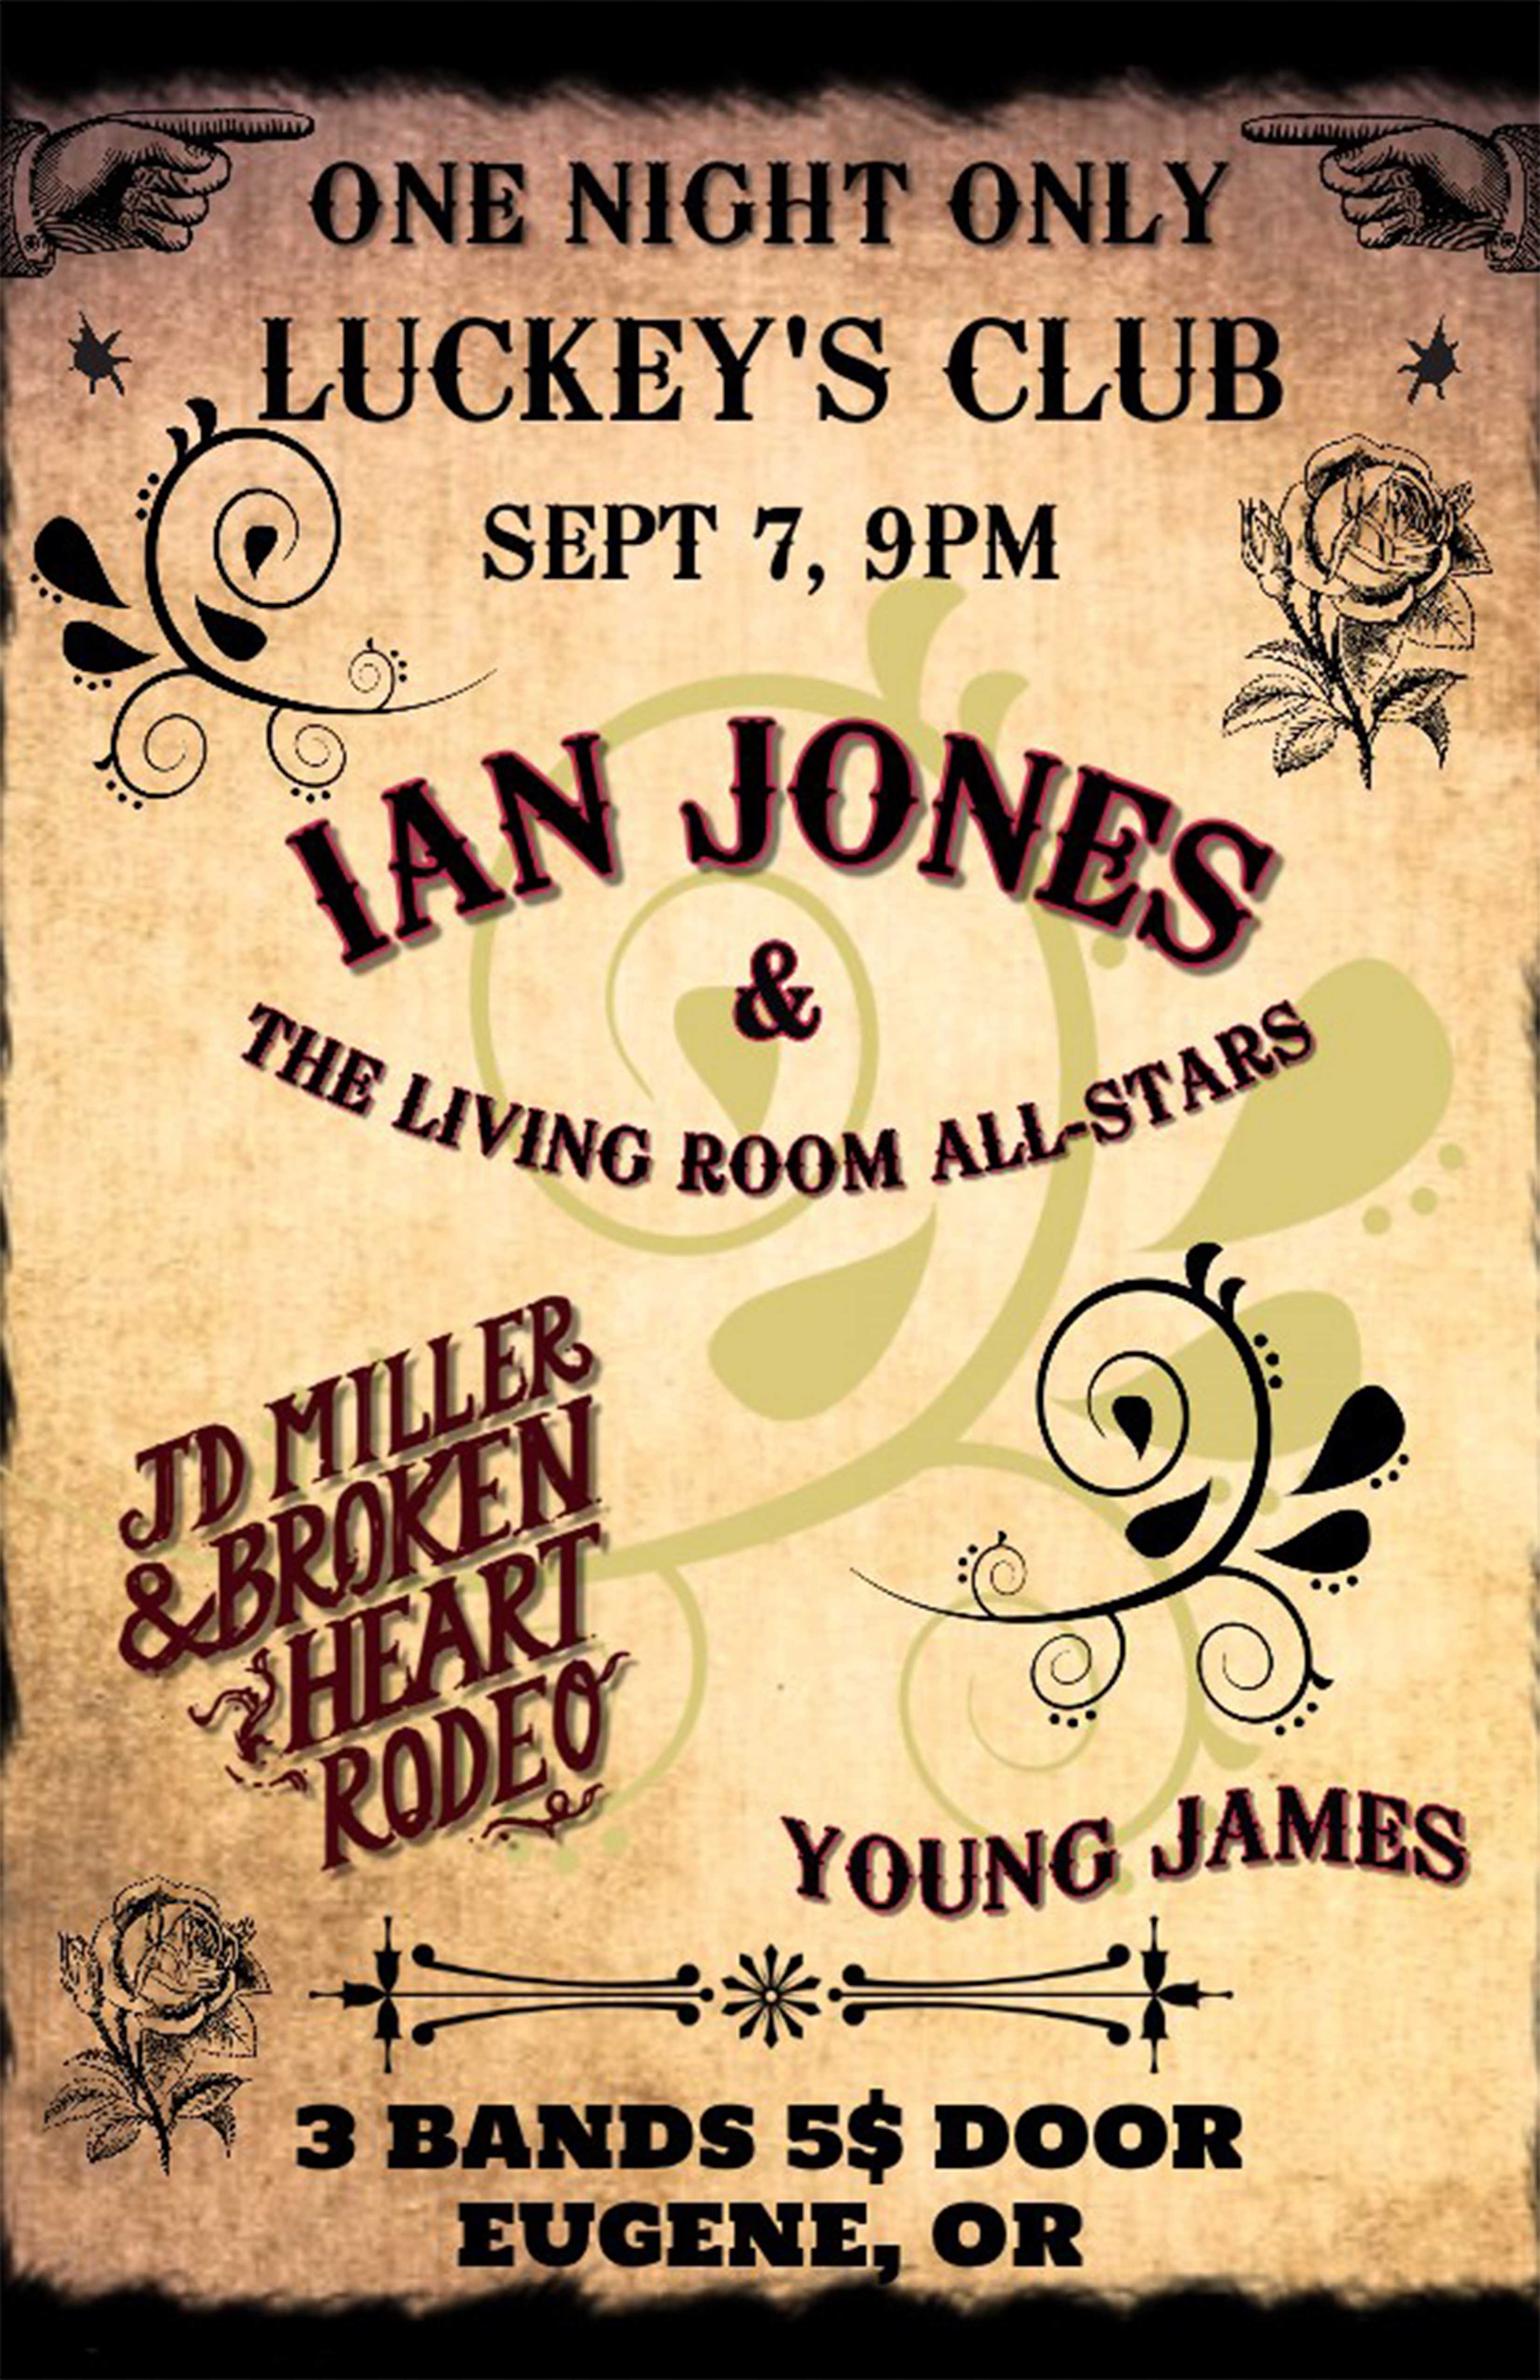 Ian Jones & The Living Room All Stars / JD Miller & Broken Heart Rodeo / Young James